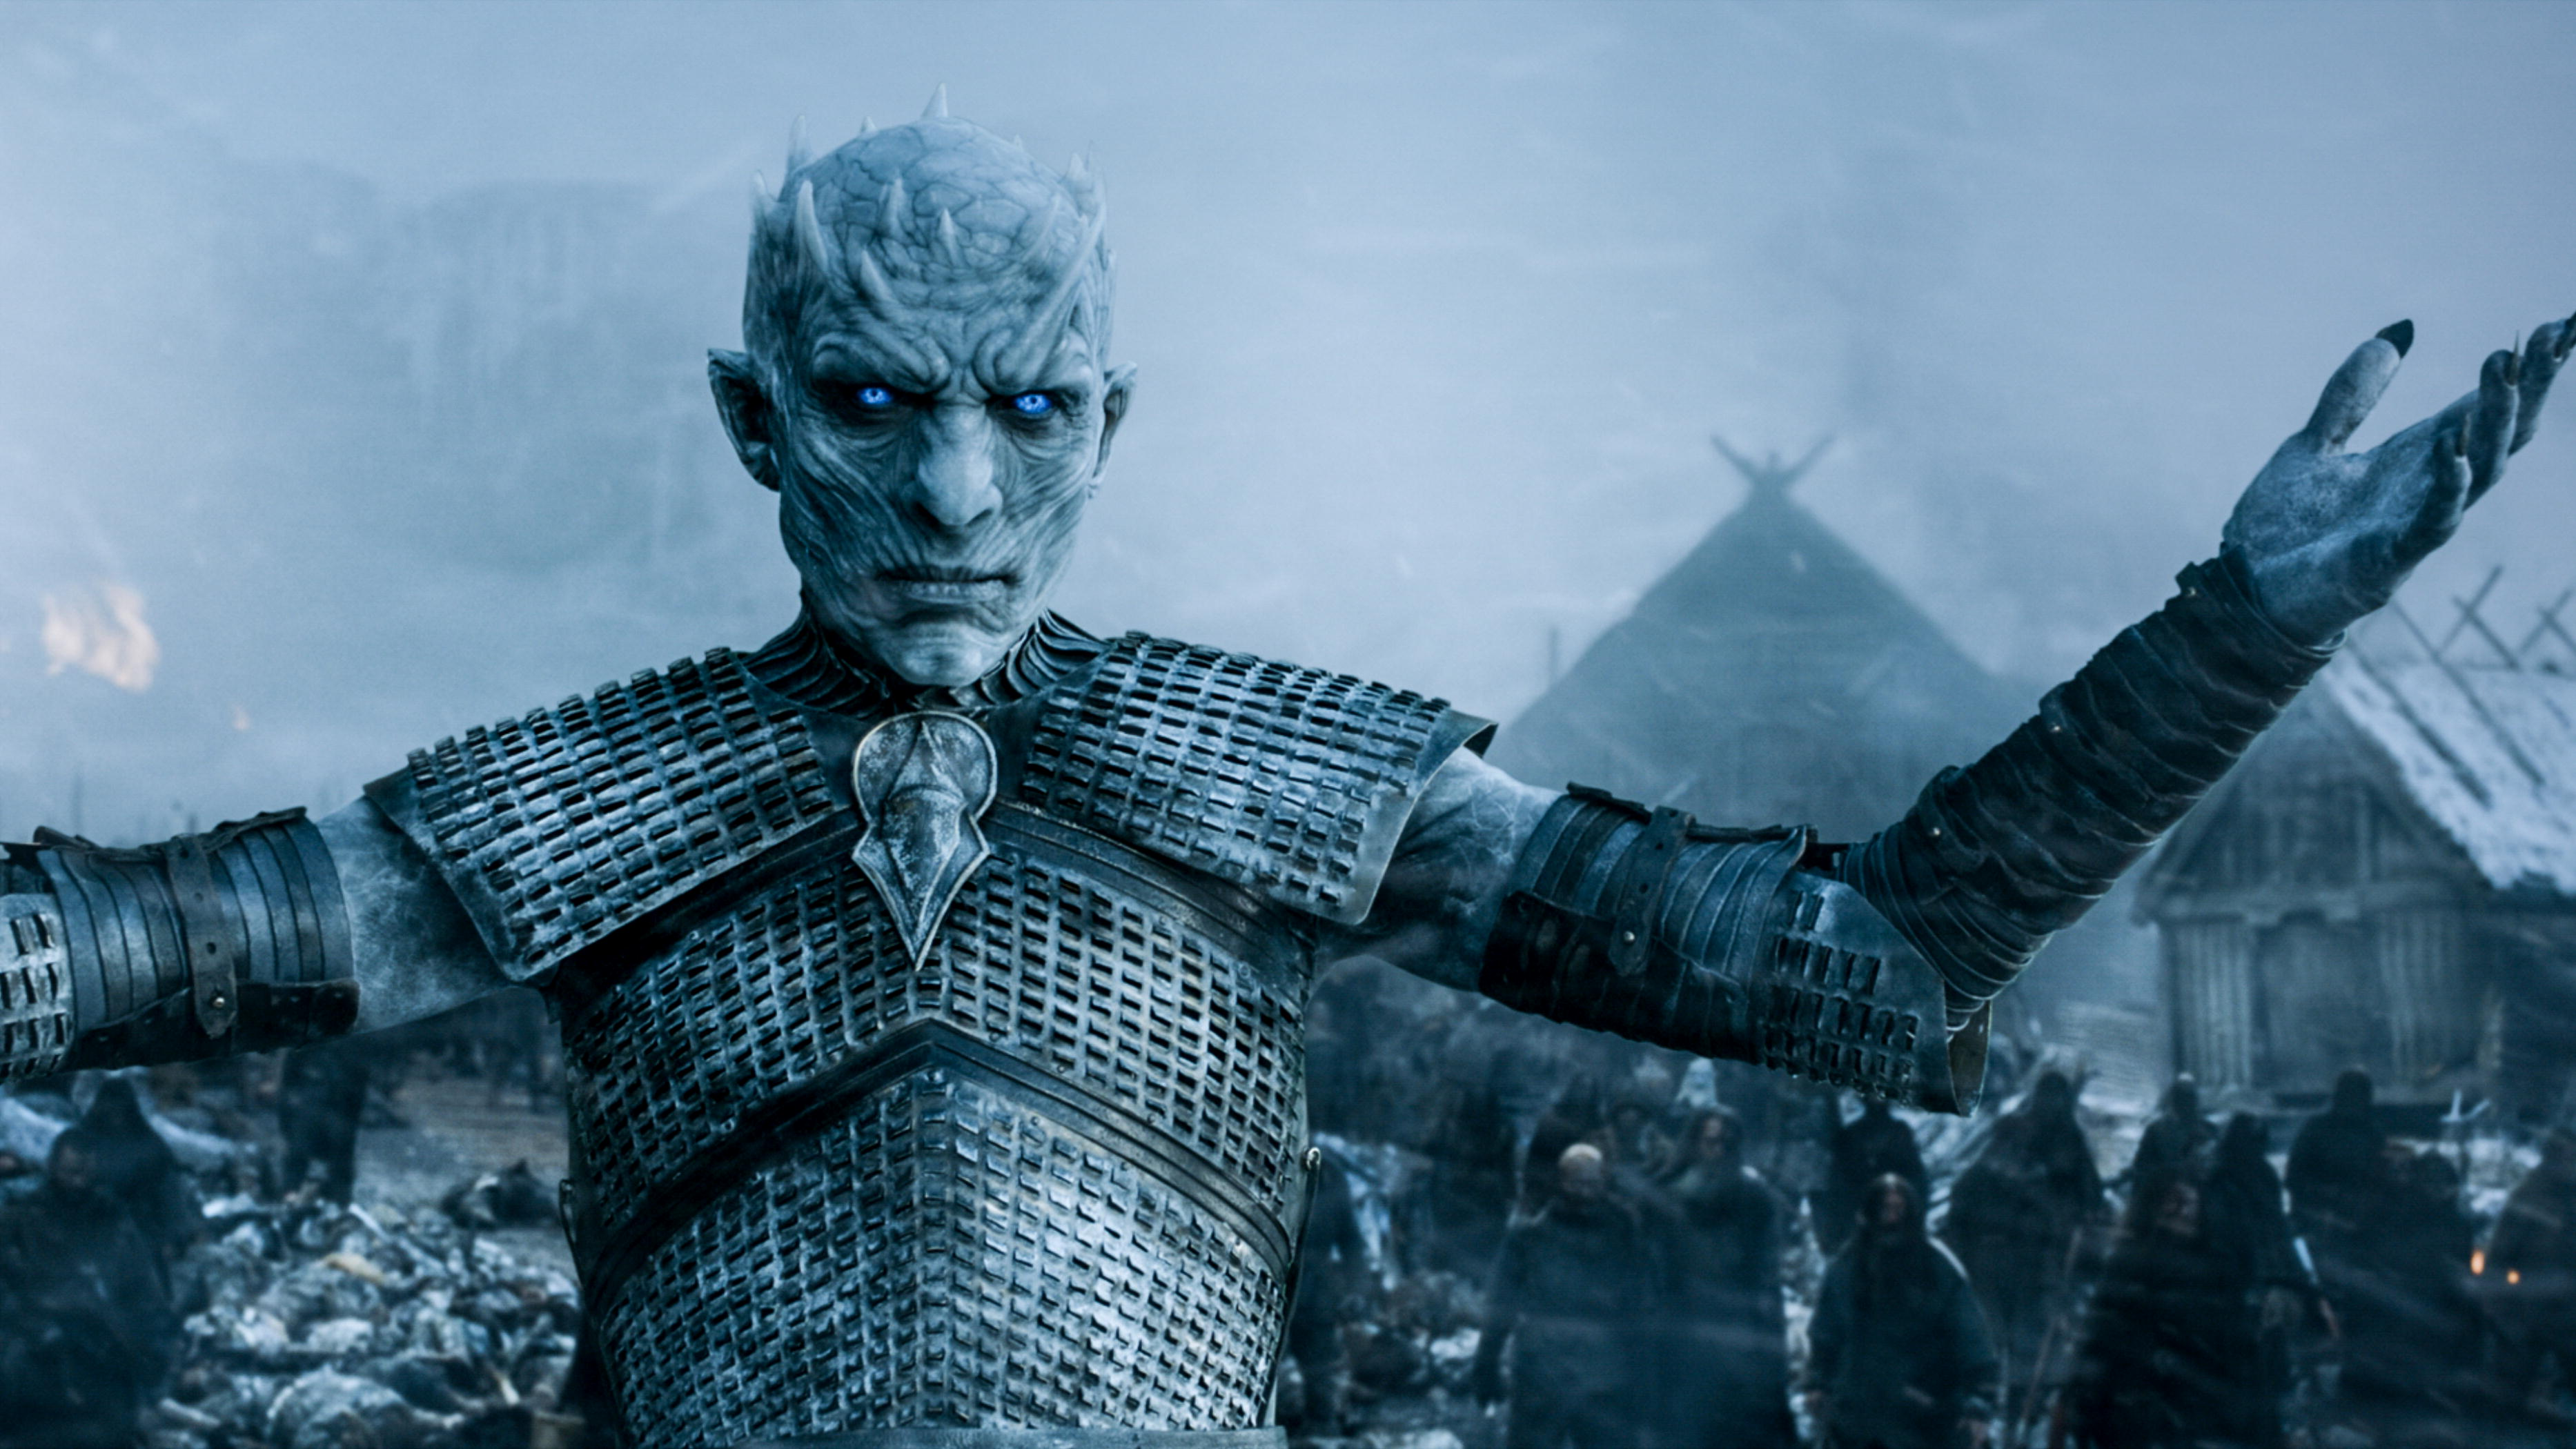 d6940d4f931b Lore of Thrones: Let's talk about the Night King after this week's Game of  Thrones